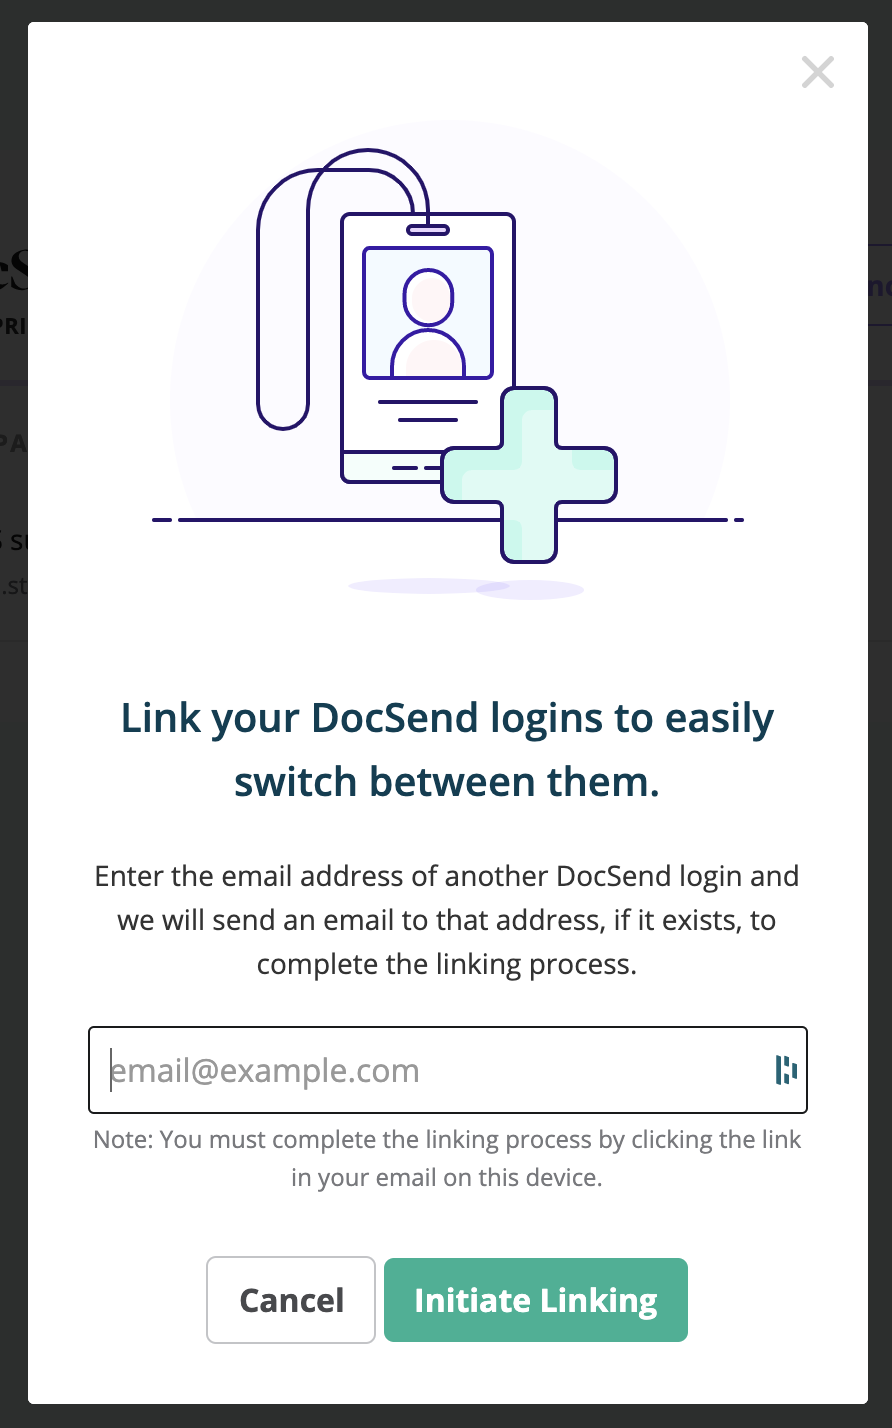 Enter_linked_email.png